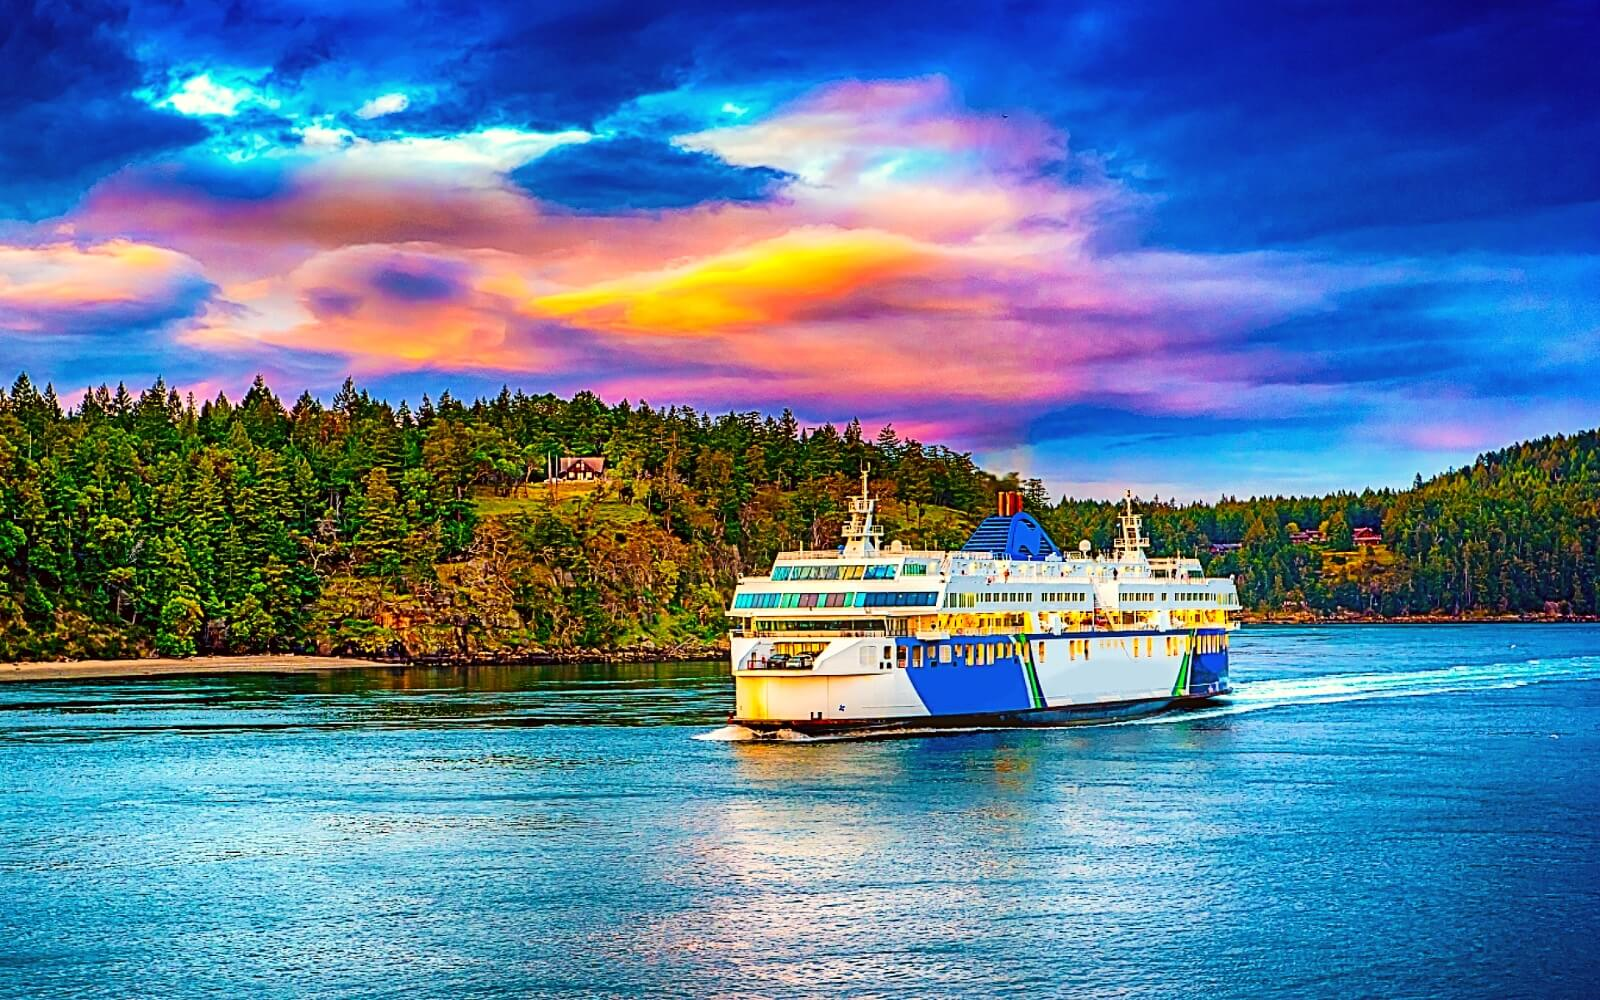 A BC Ferry passes through Active Pass